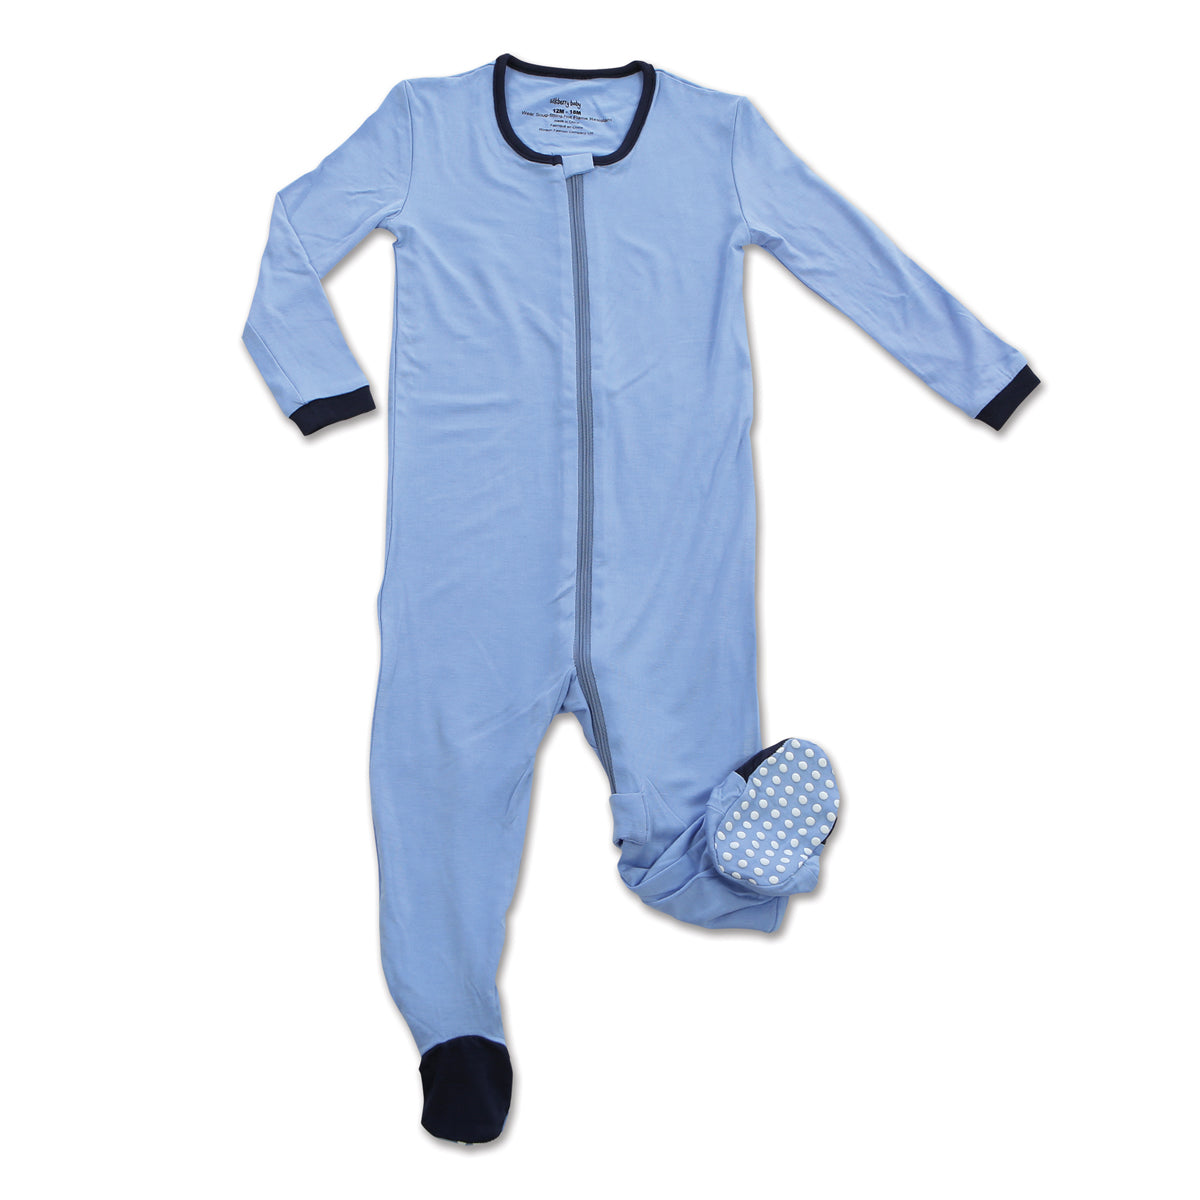 Bamboo Footies with Easy Dressing Zipper (Serenity)